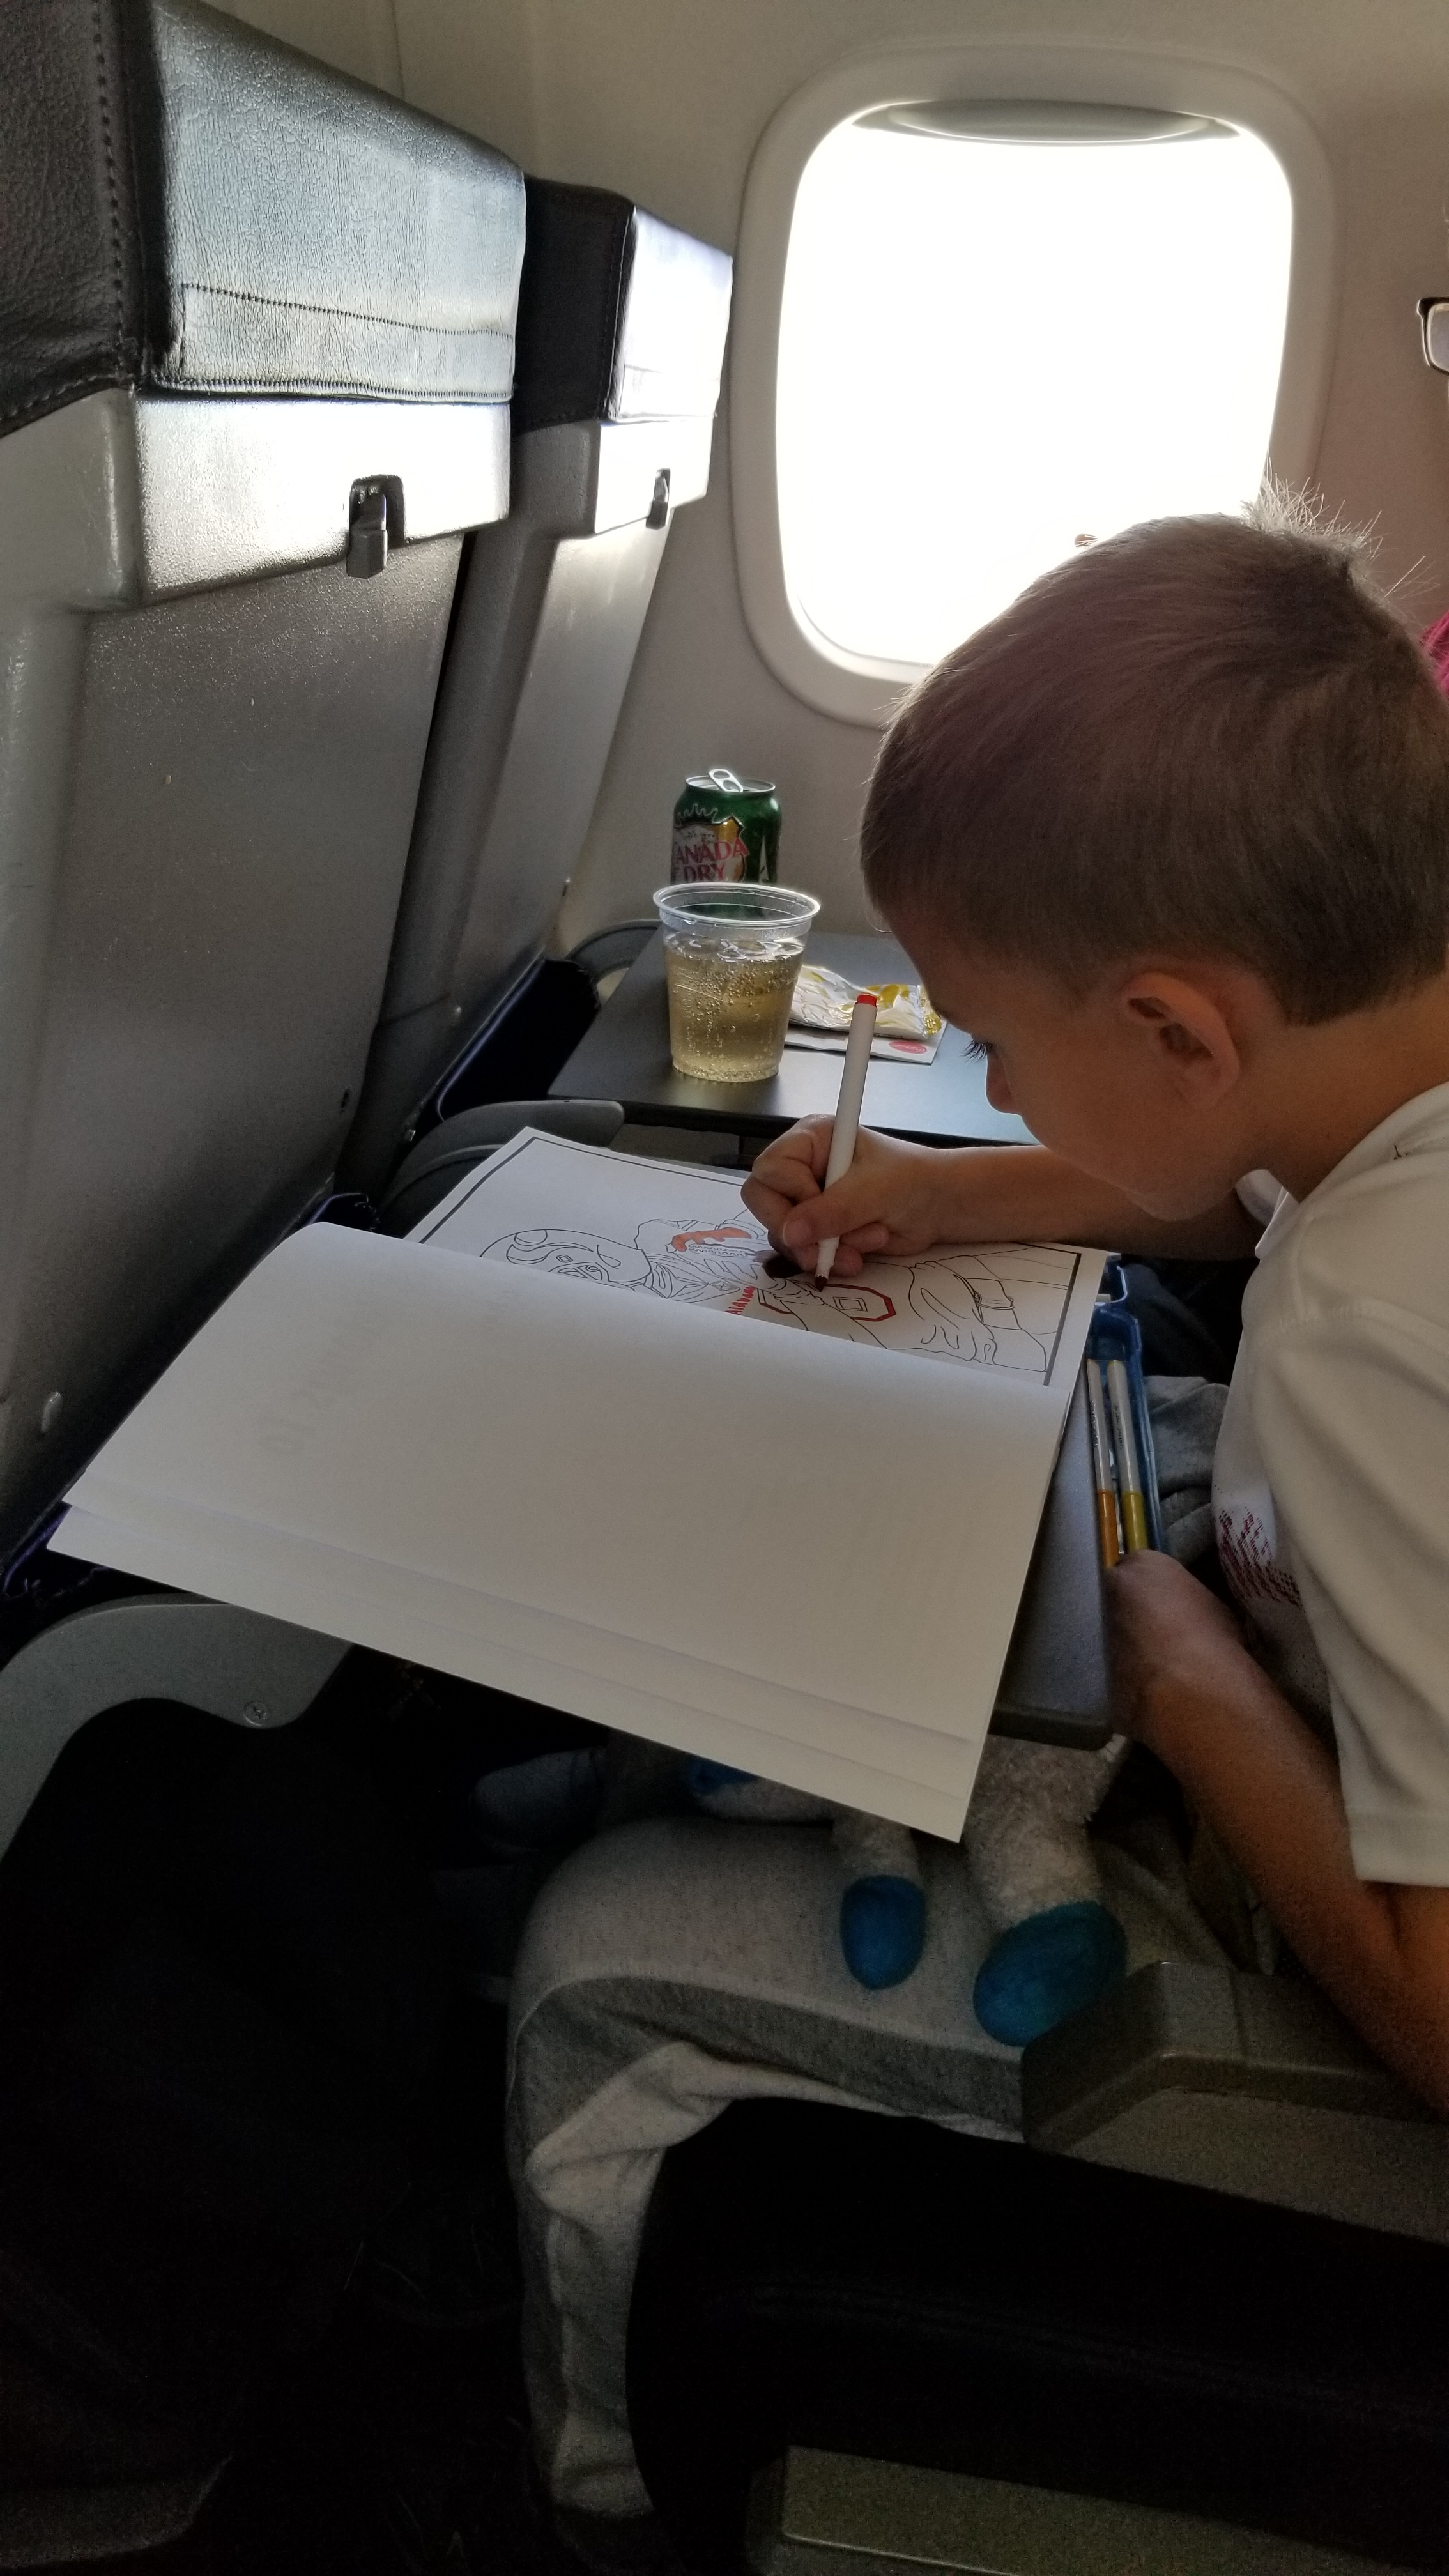 Caleb passing time on the flights